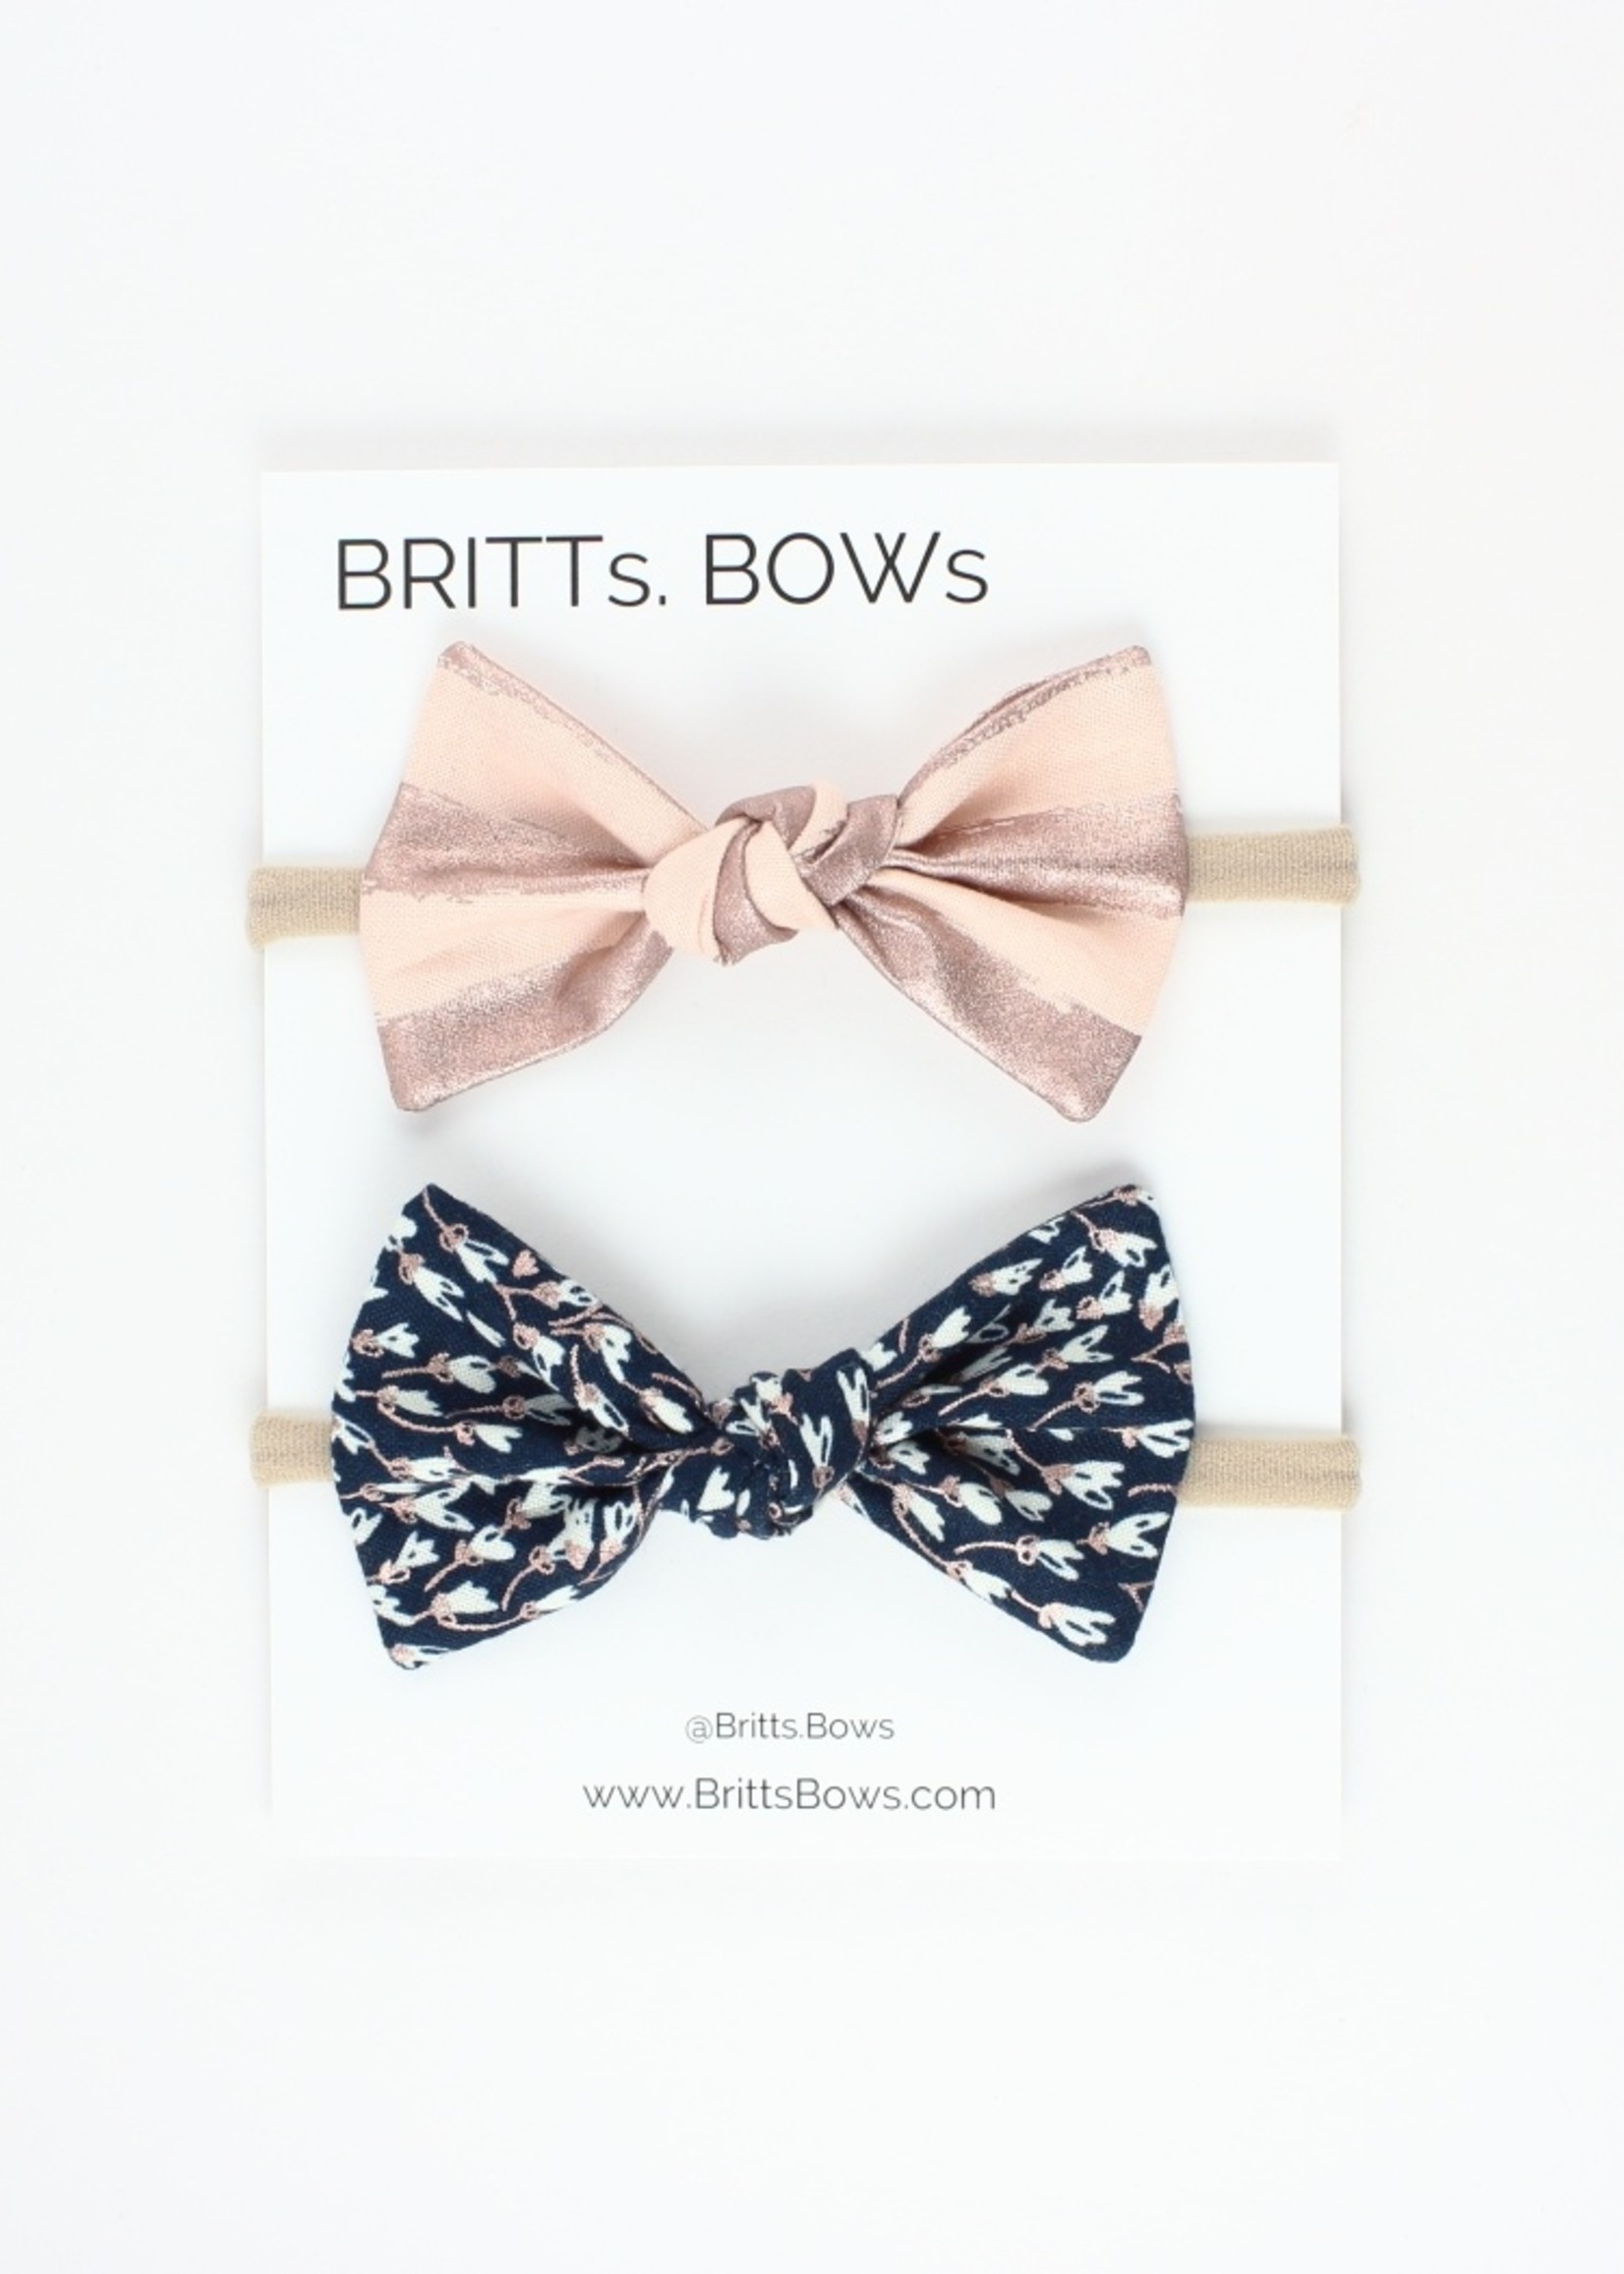 Britts bows Rose Gold/Navy Floral Headband